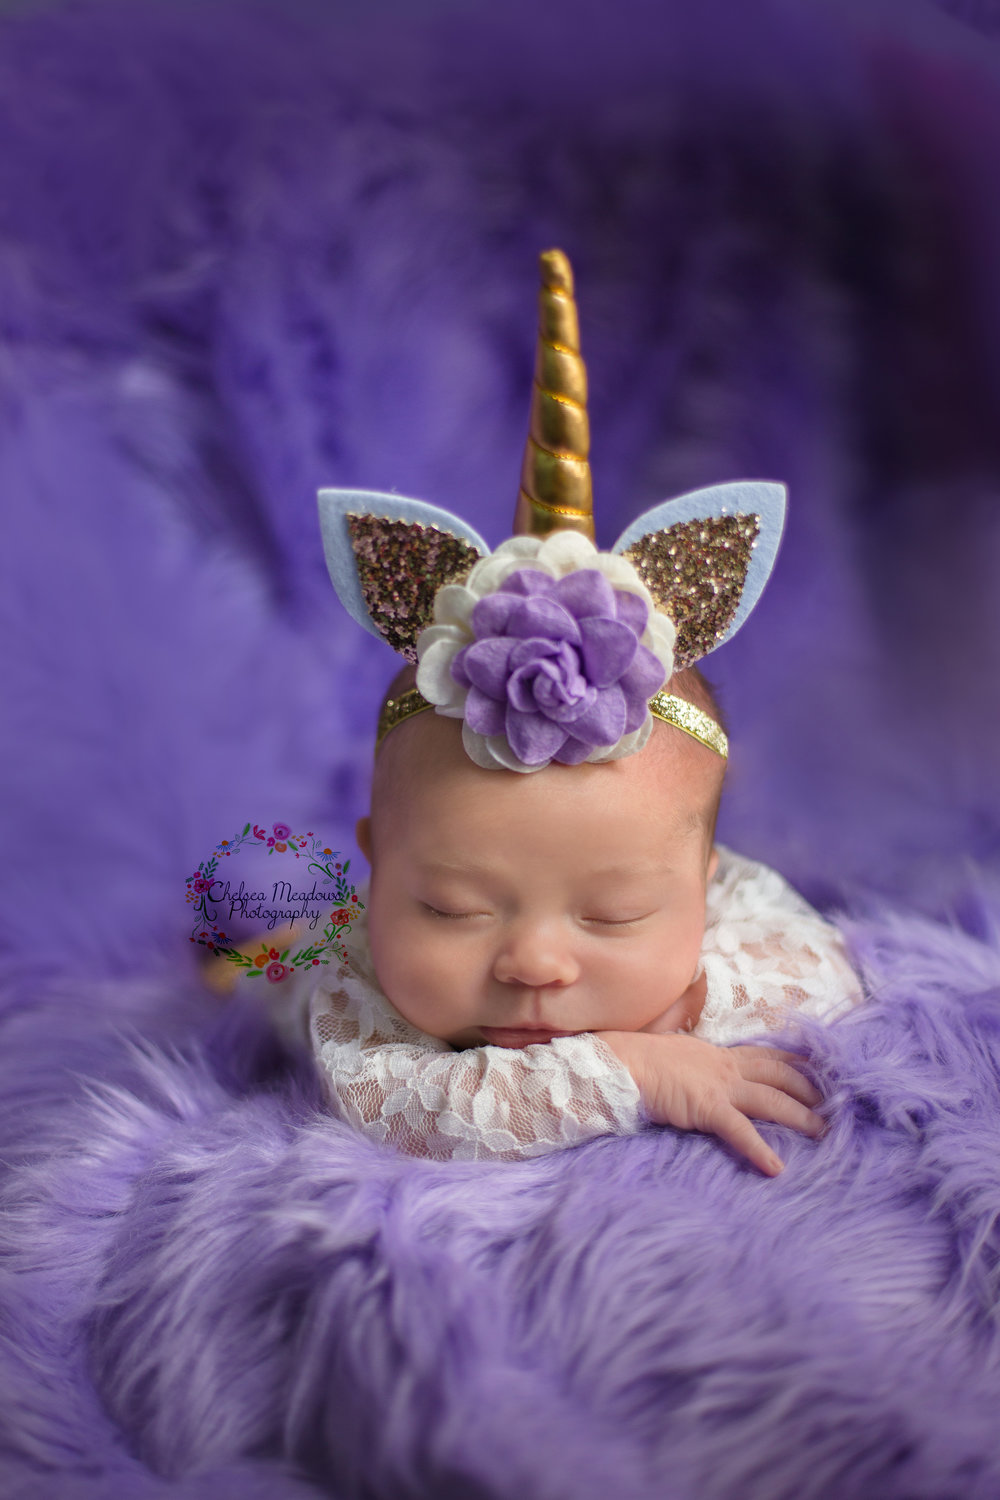 Ella Newborn Photos - Nashville Newborn Photographer - Chelsea Meadows Photography (156).jpg